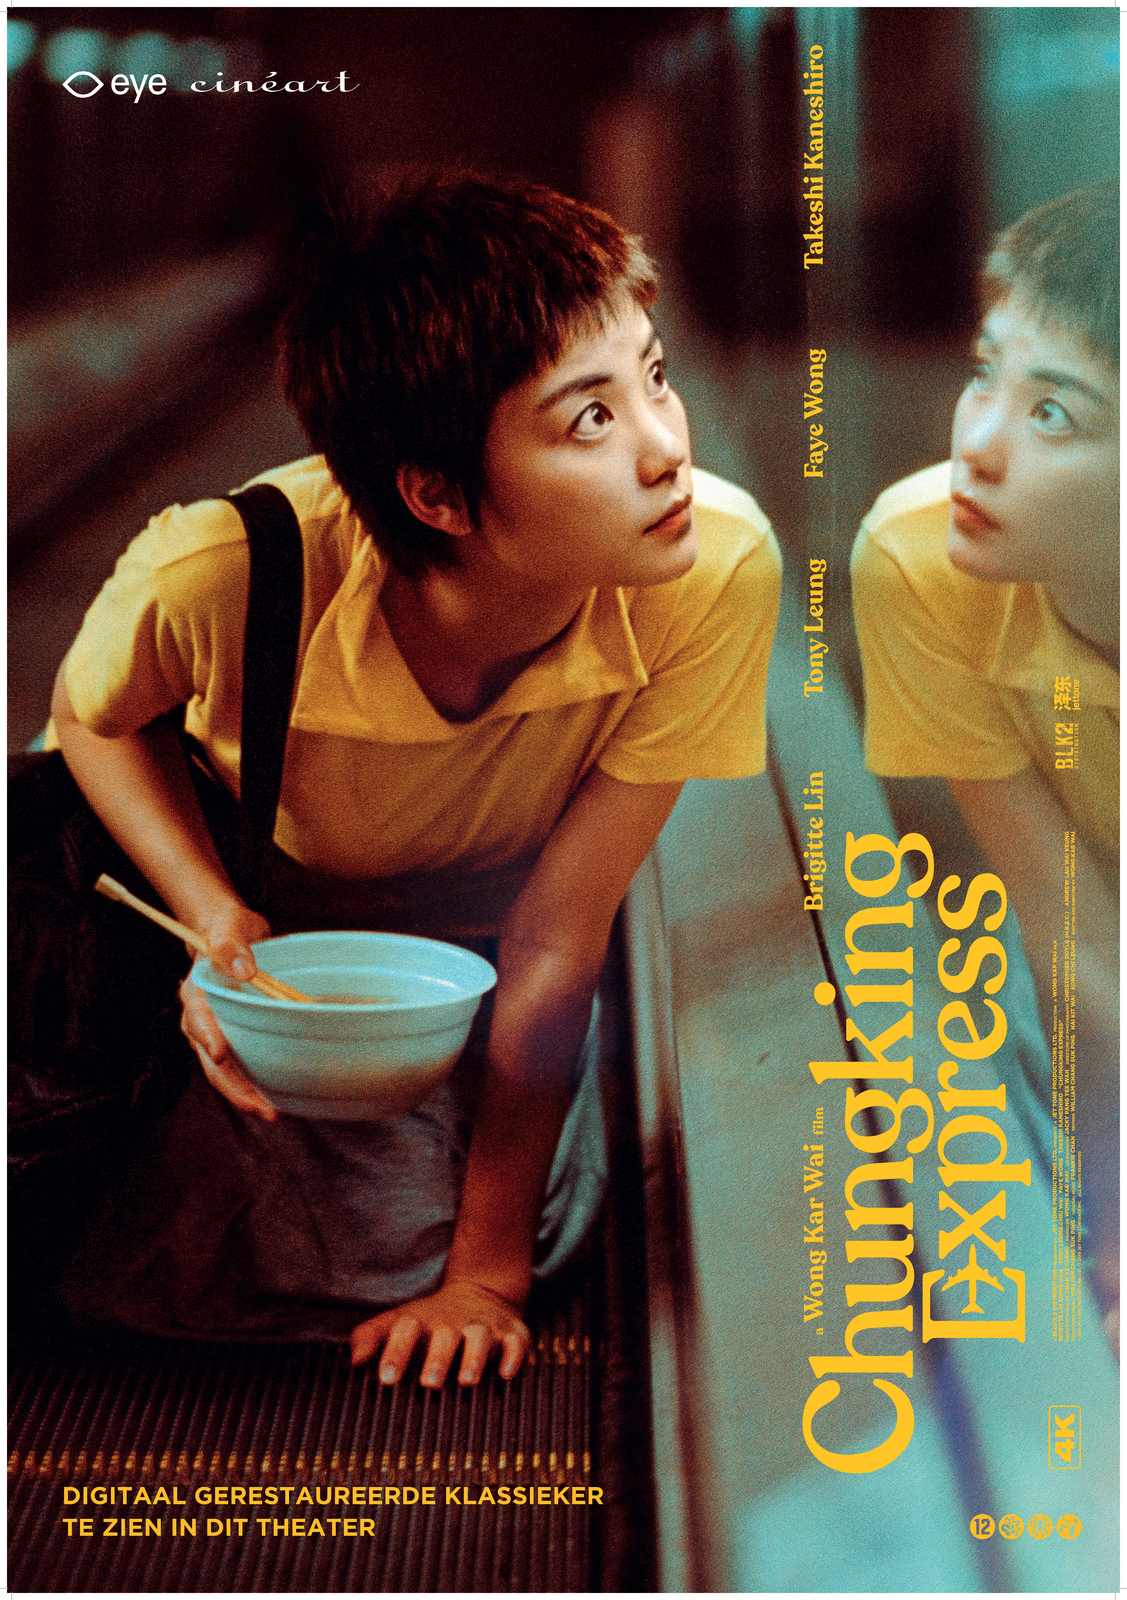 Chungking Express (with English subtitles)